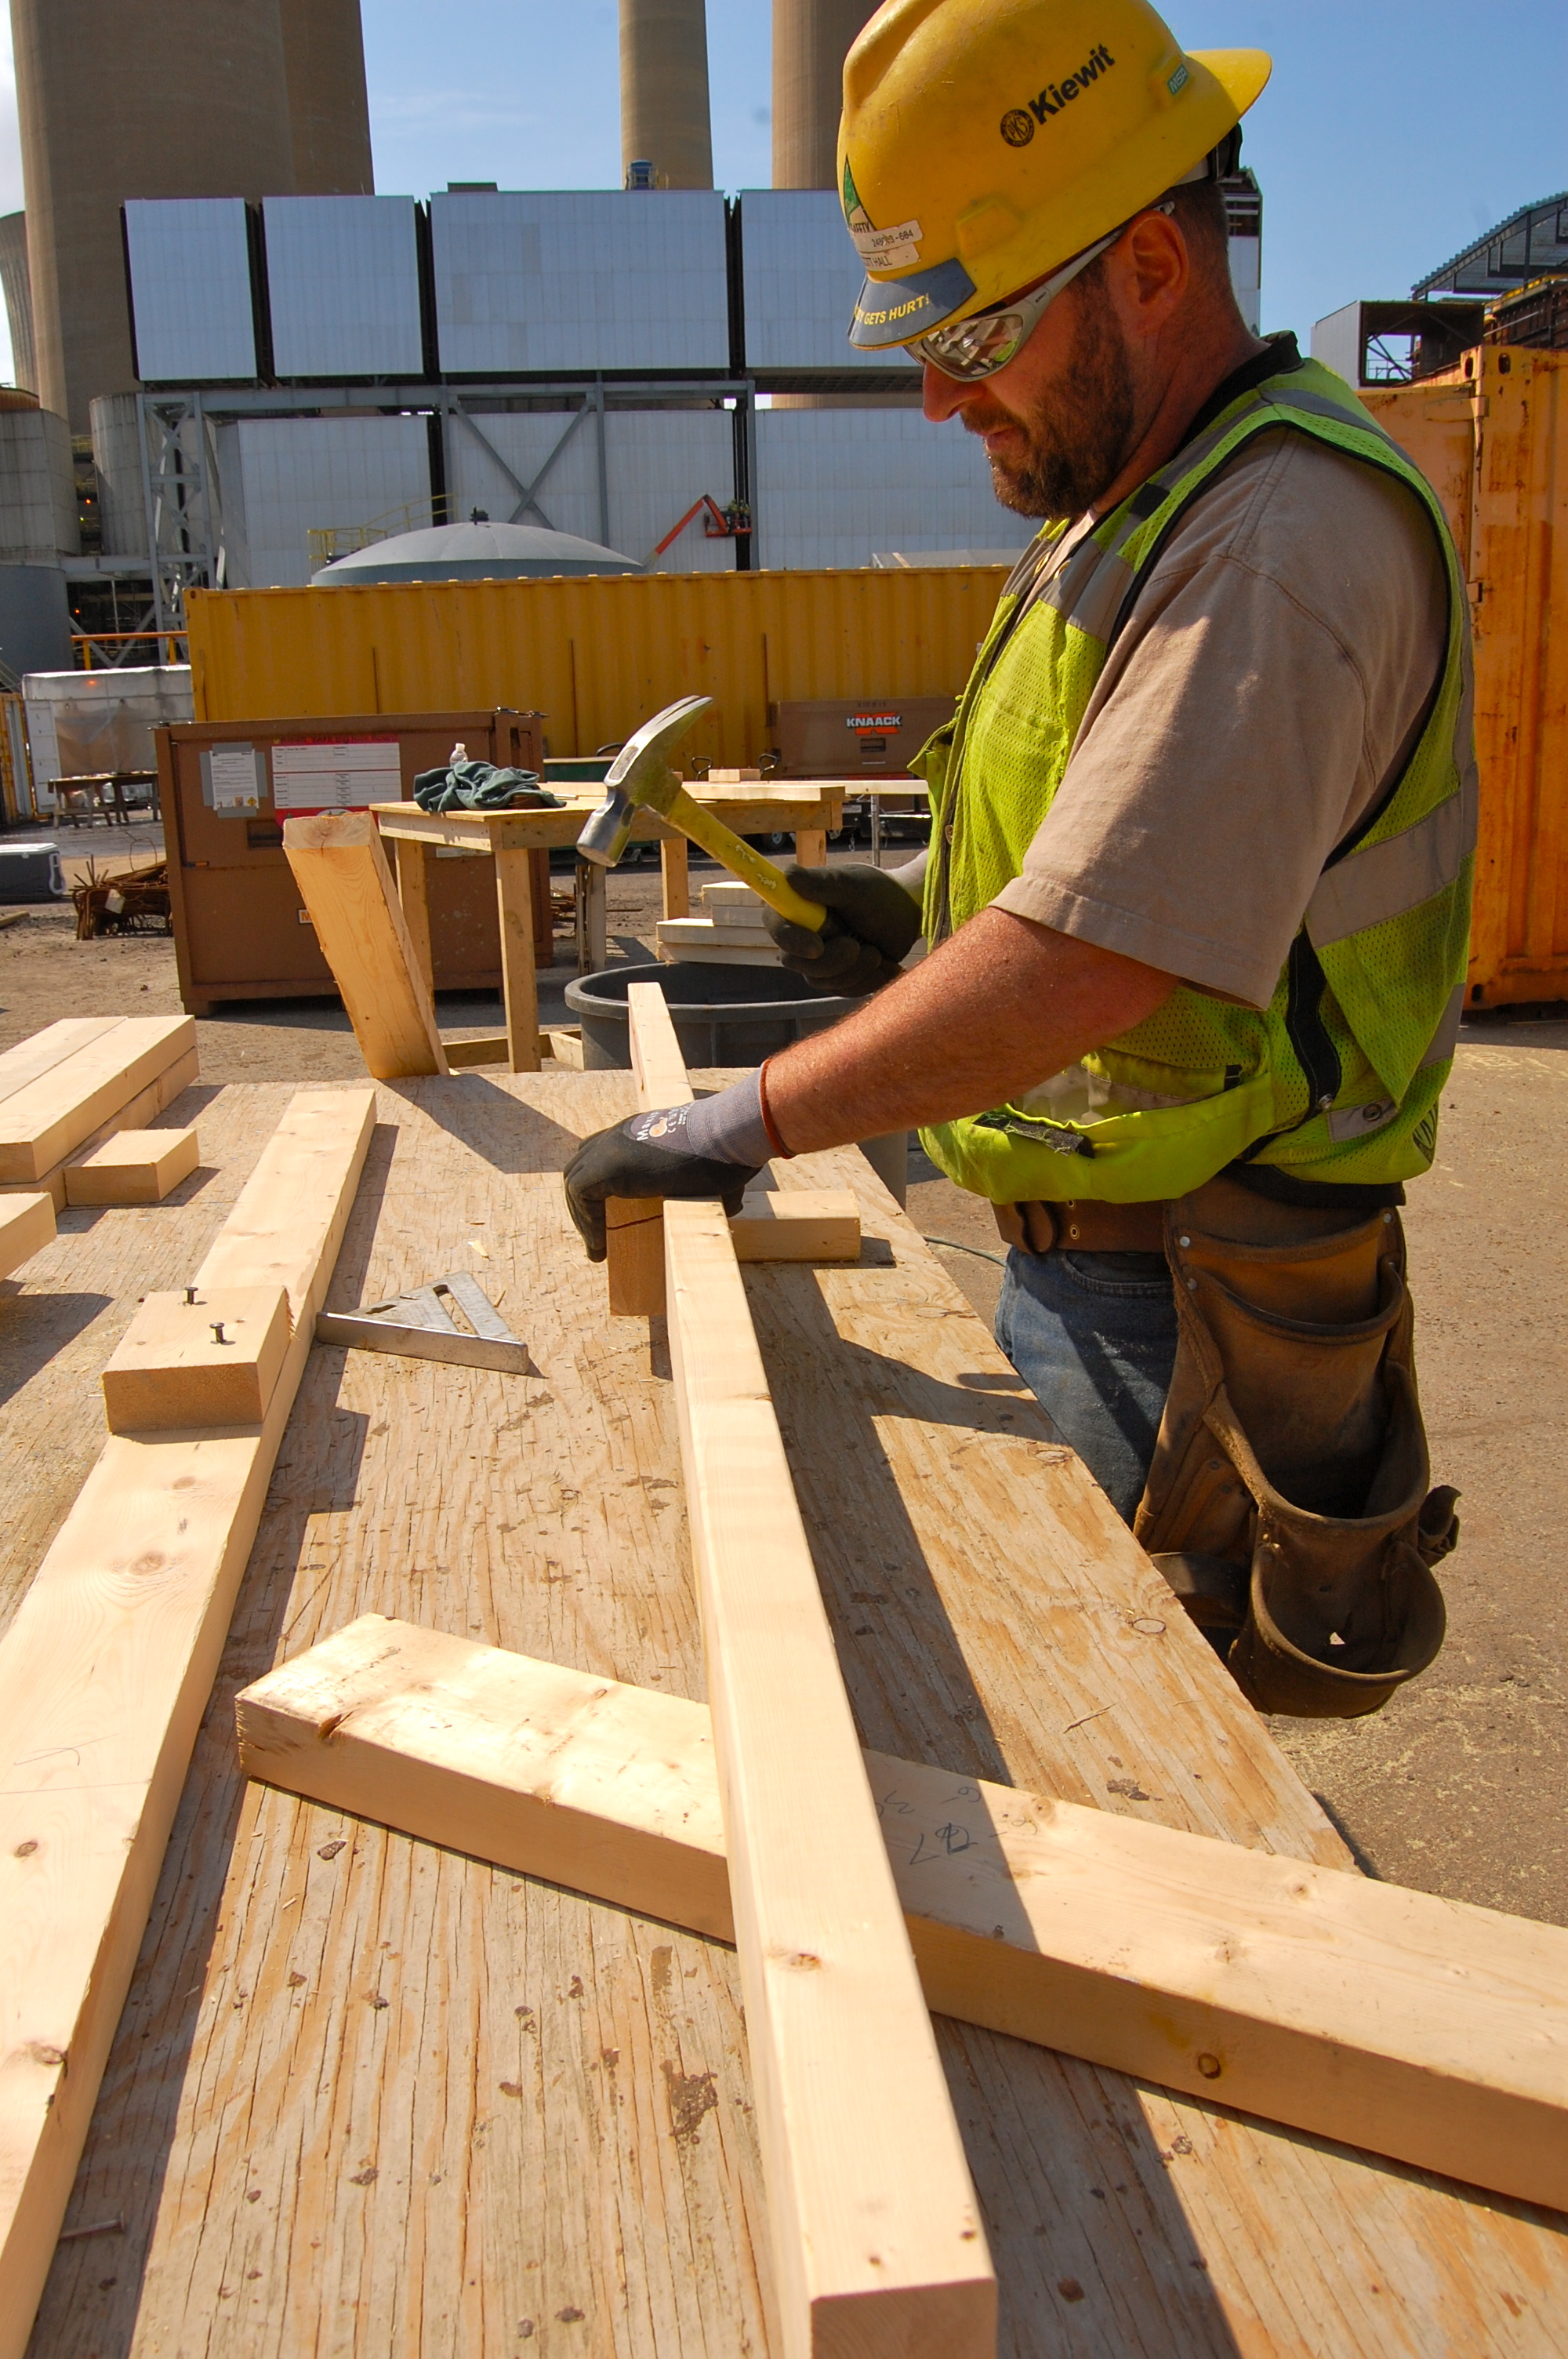 Carpenter wearing PPE